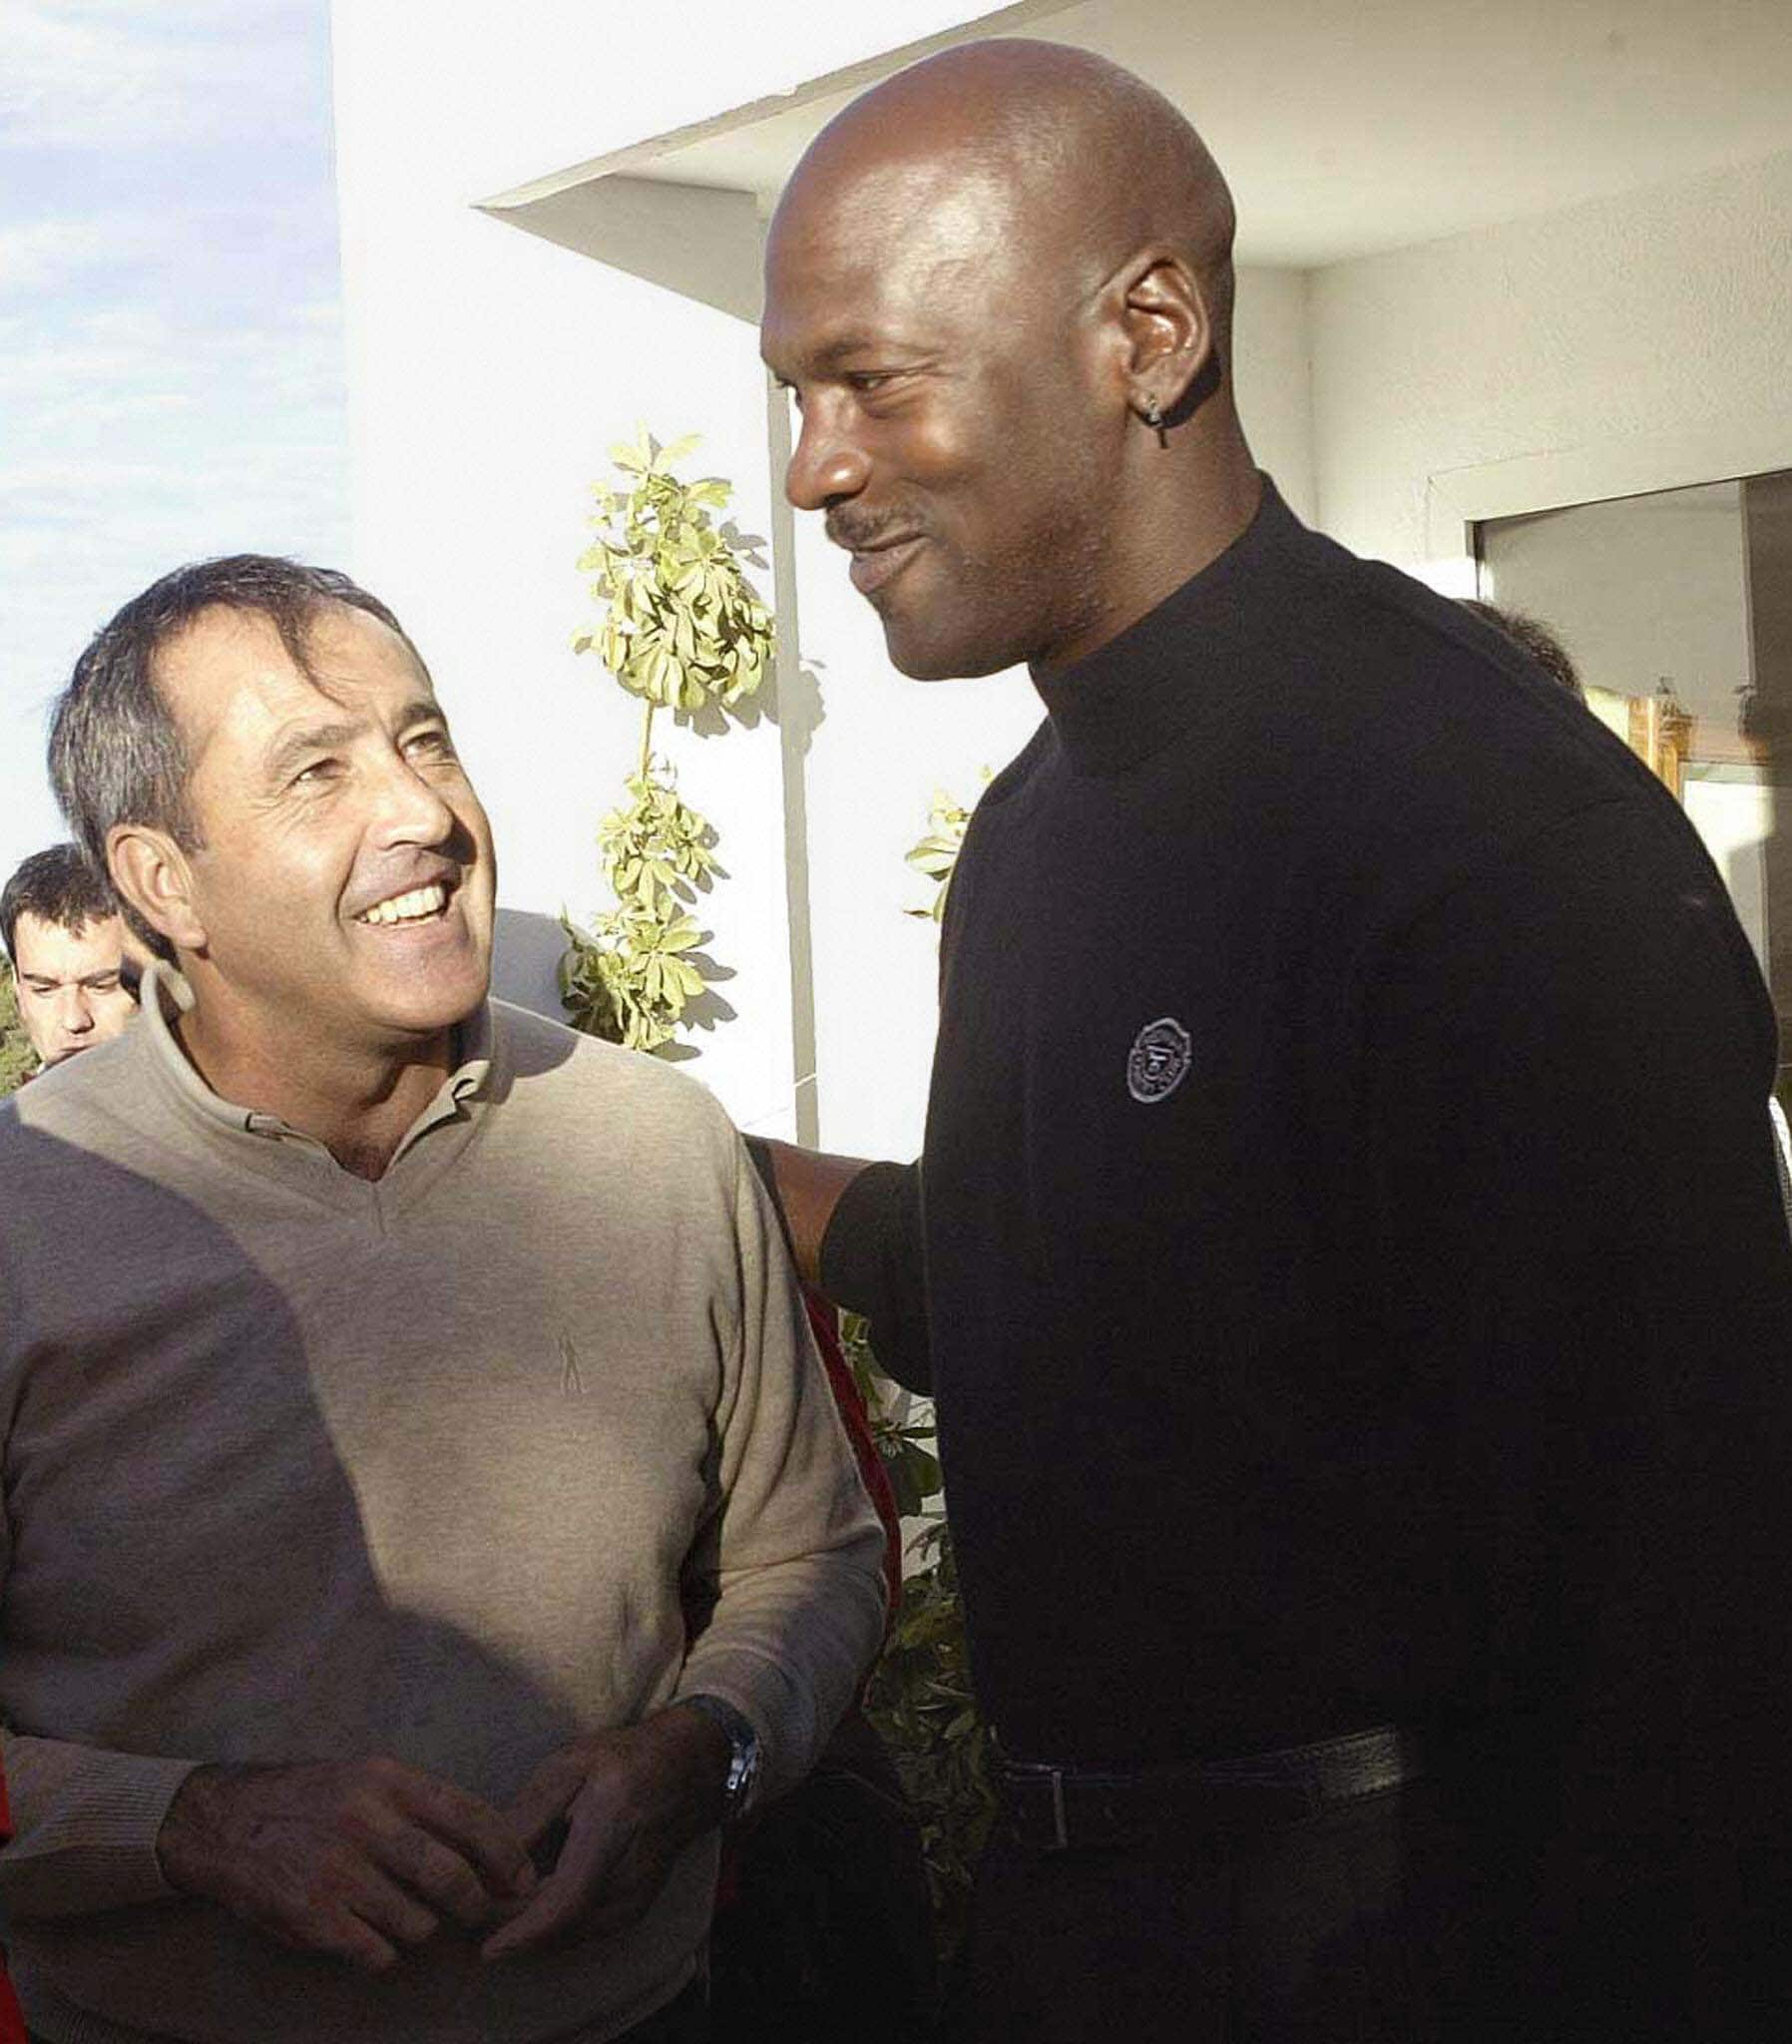 Michael Jordan and Severiano Ballesteros